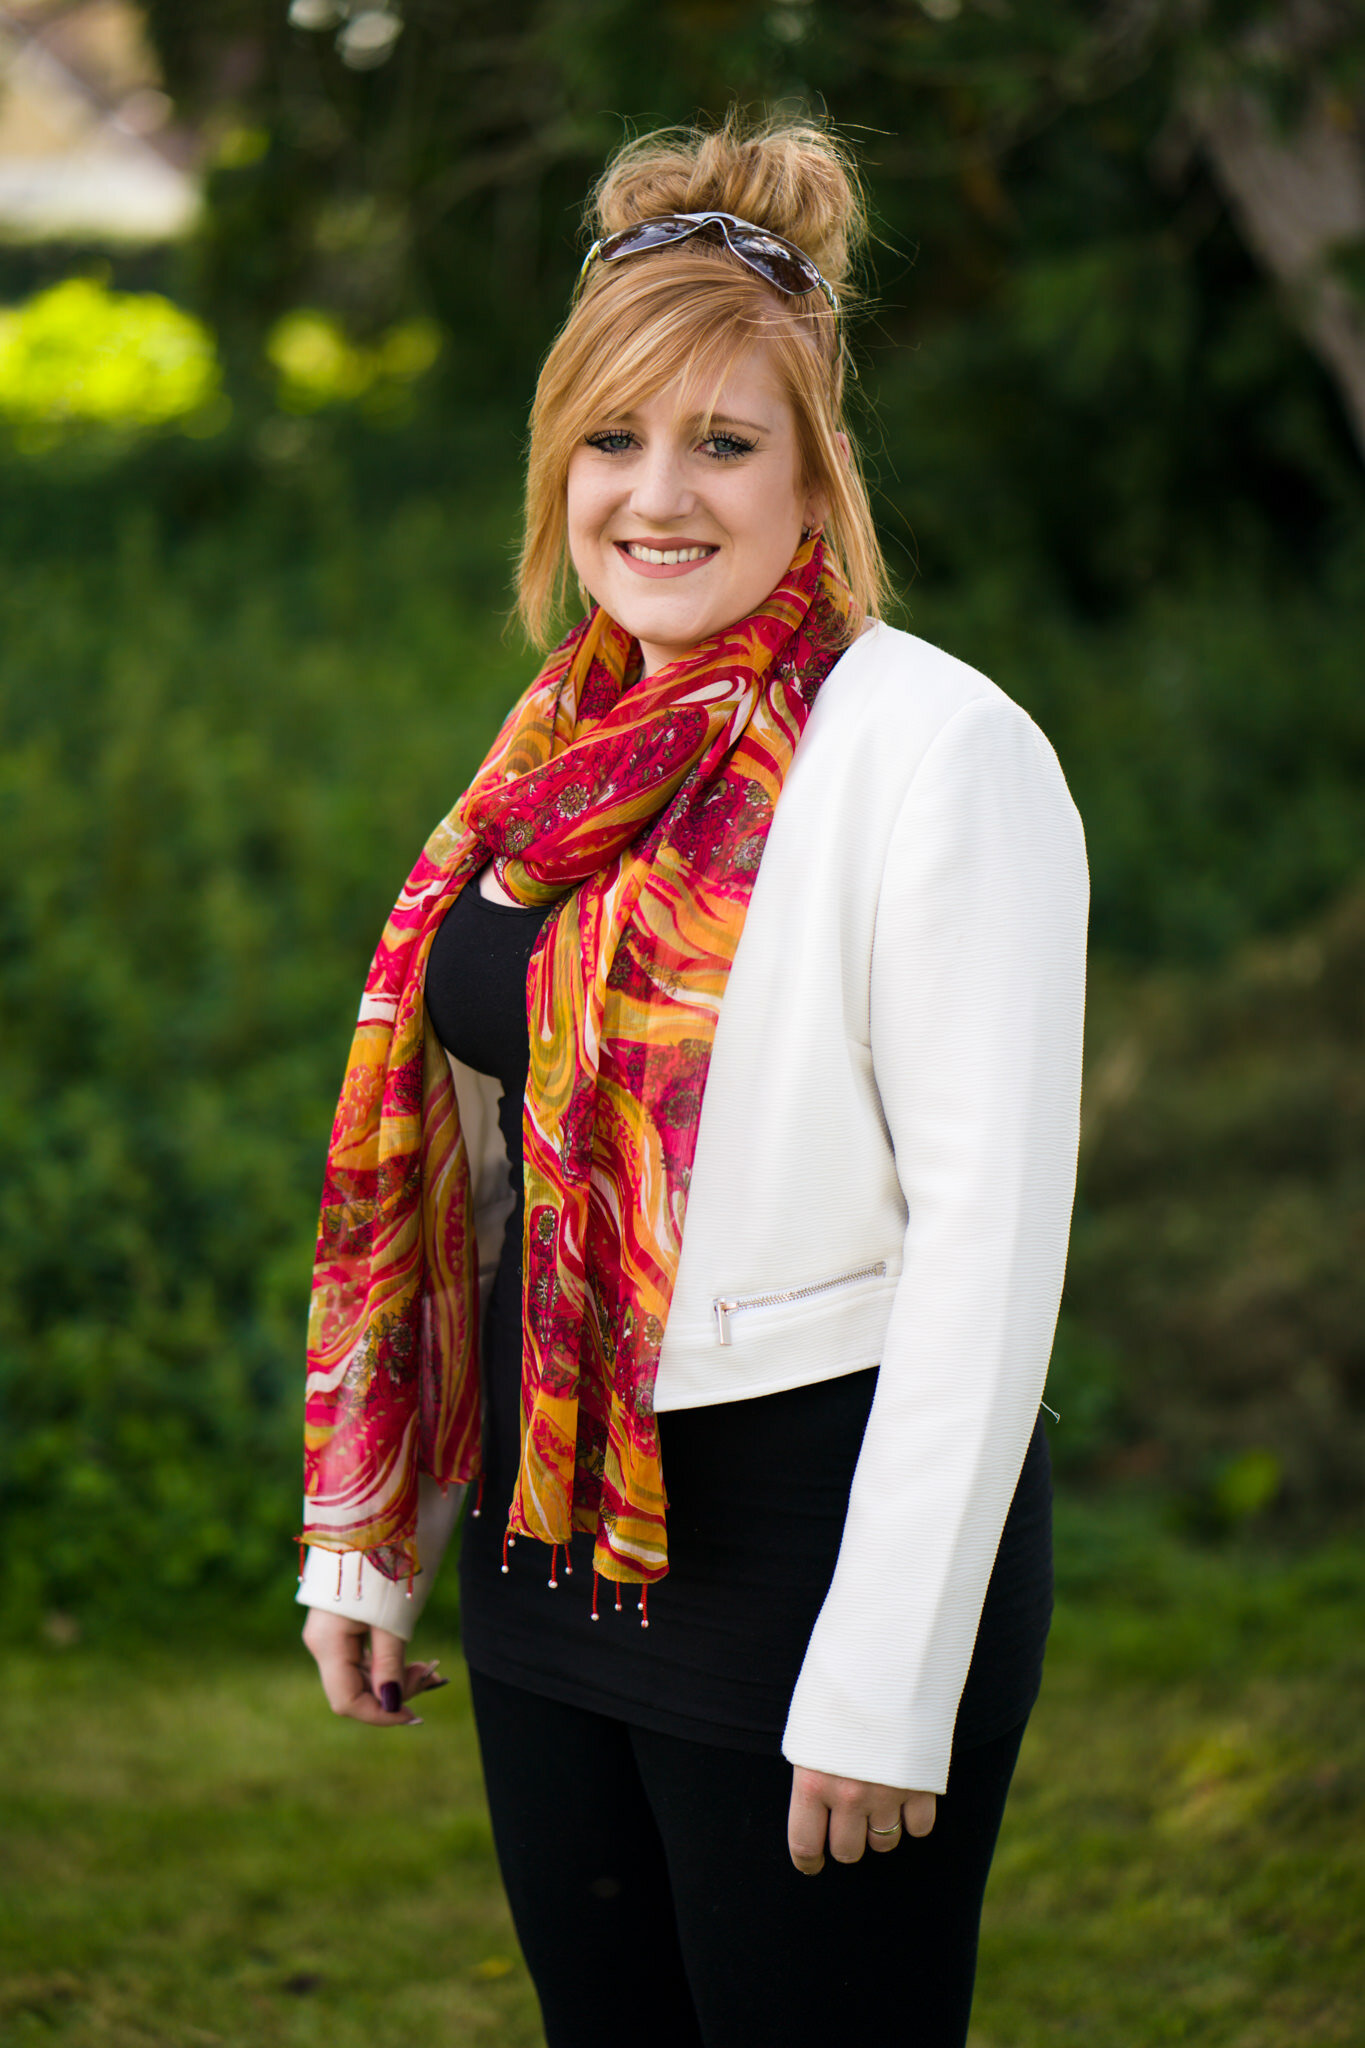 corporate-headshots-exeter00010.JPG